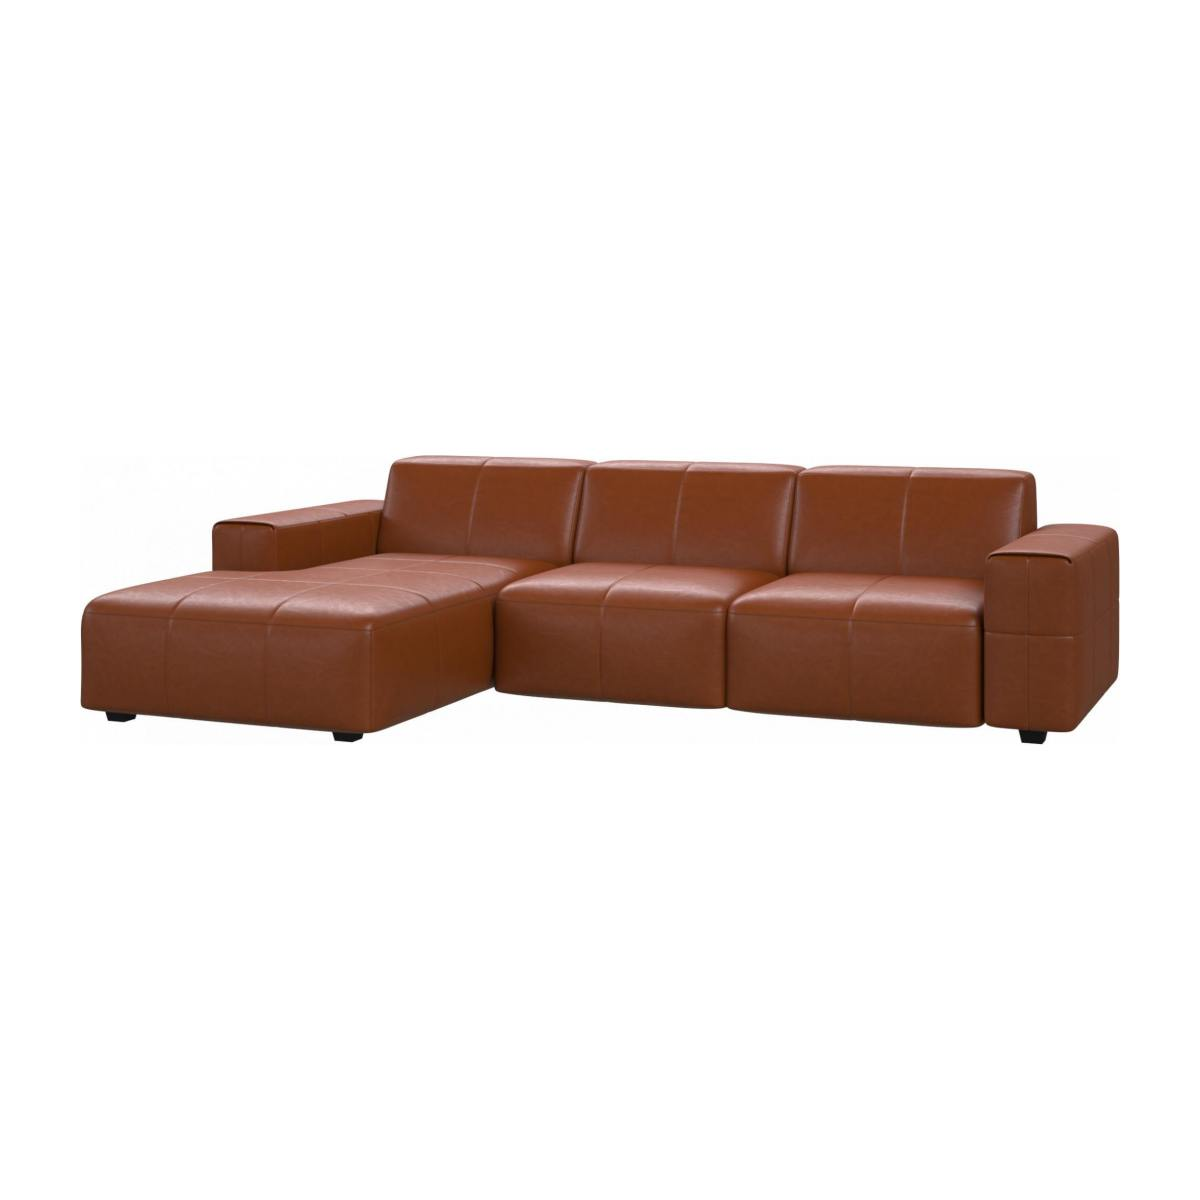 3 seater sofa with chaise longue on the left in Vintage aniline leather, old chestnut n°3